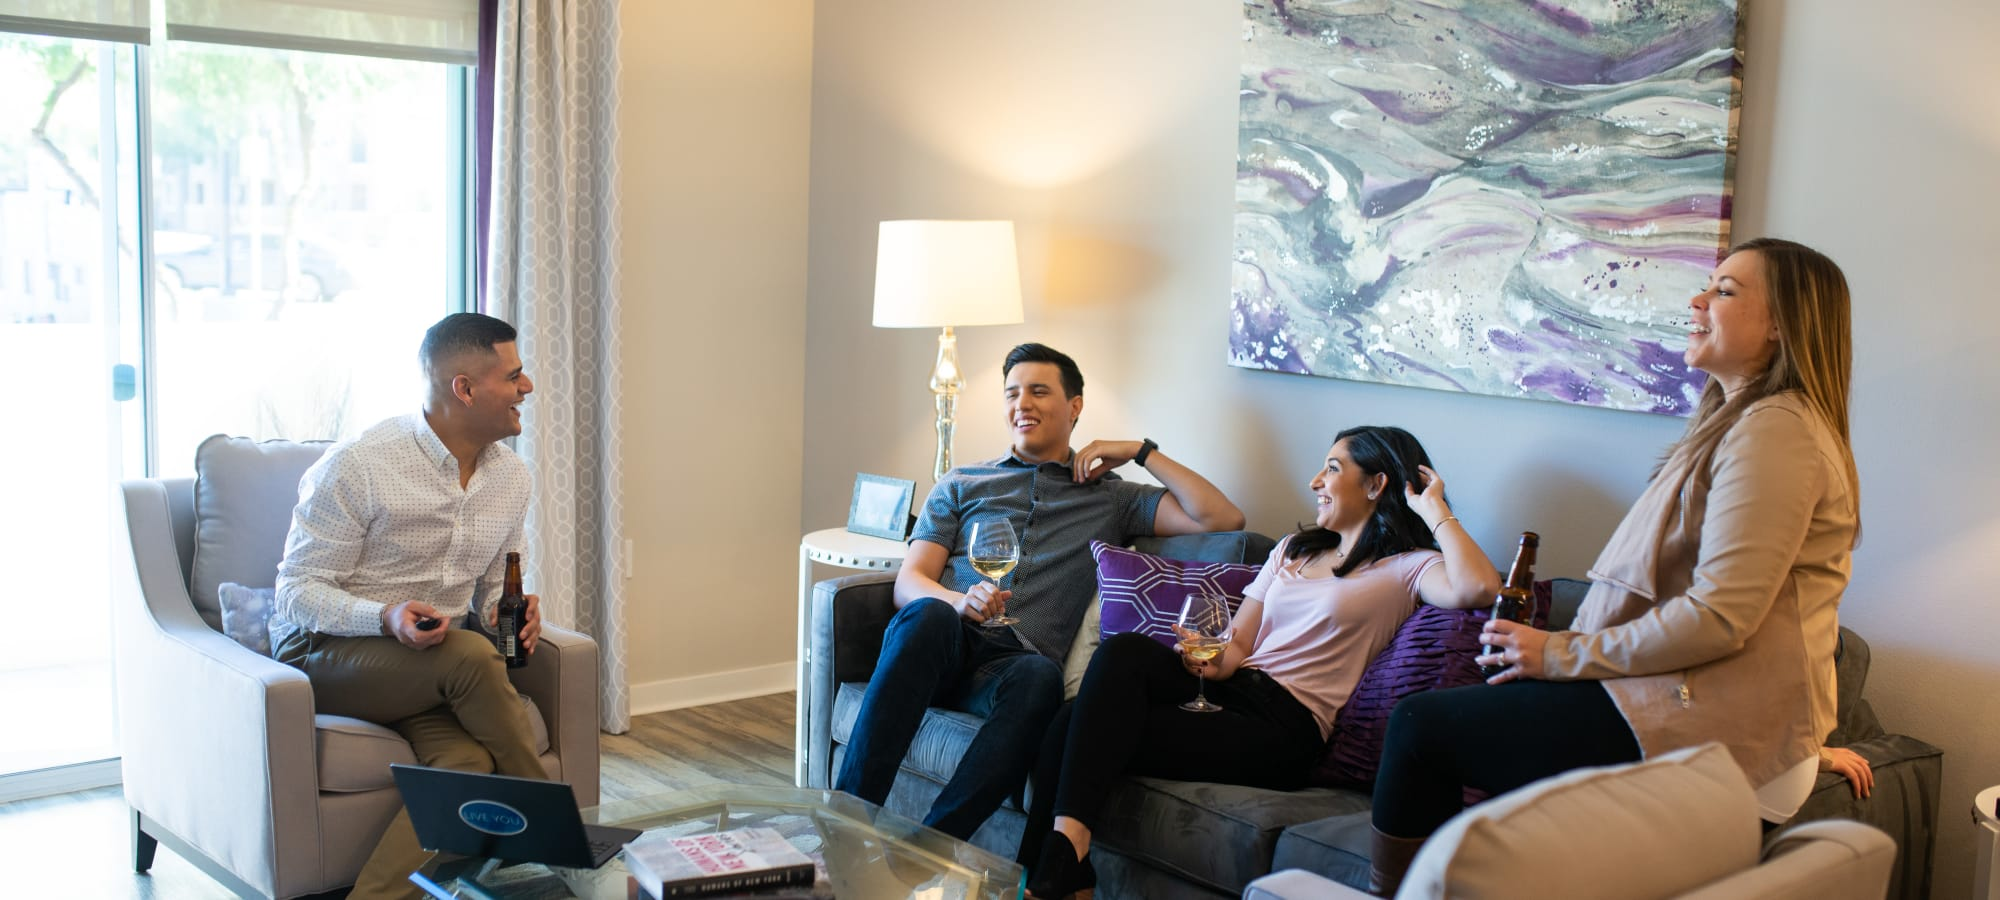 Residents enjoying wine in their new living room at The Astor at Osborn in Phoenix, Arizona